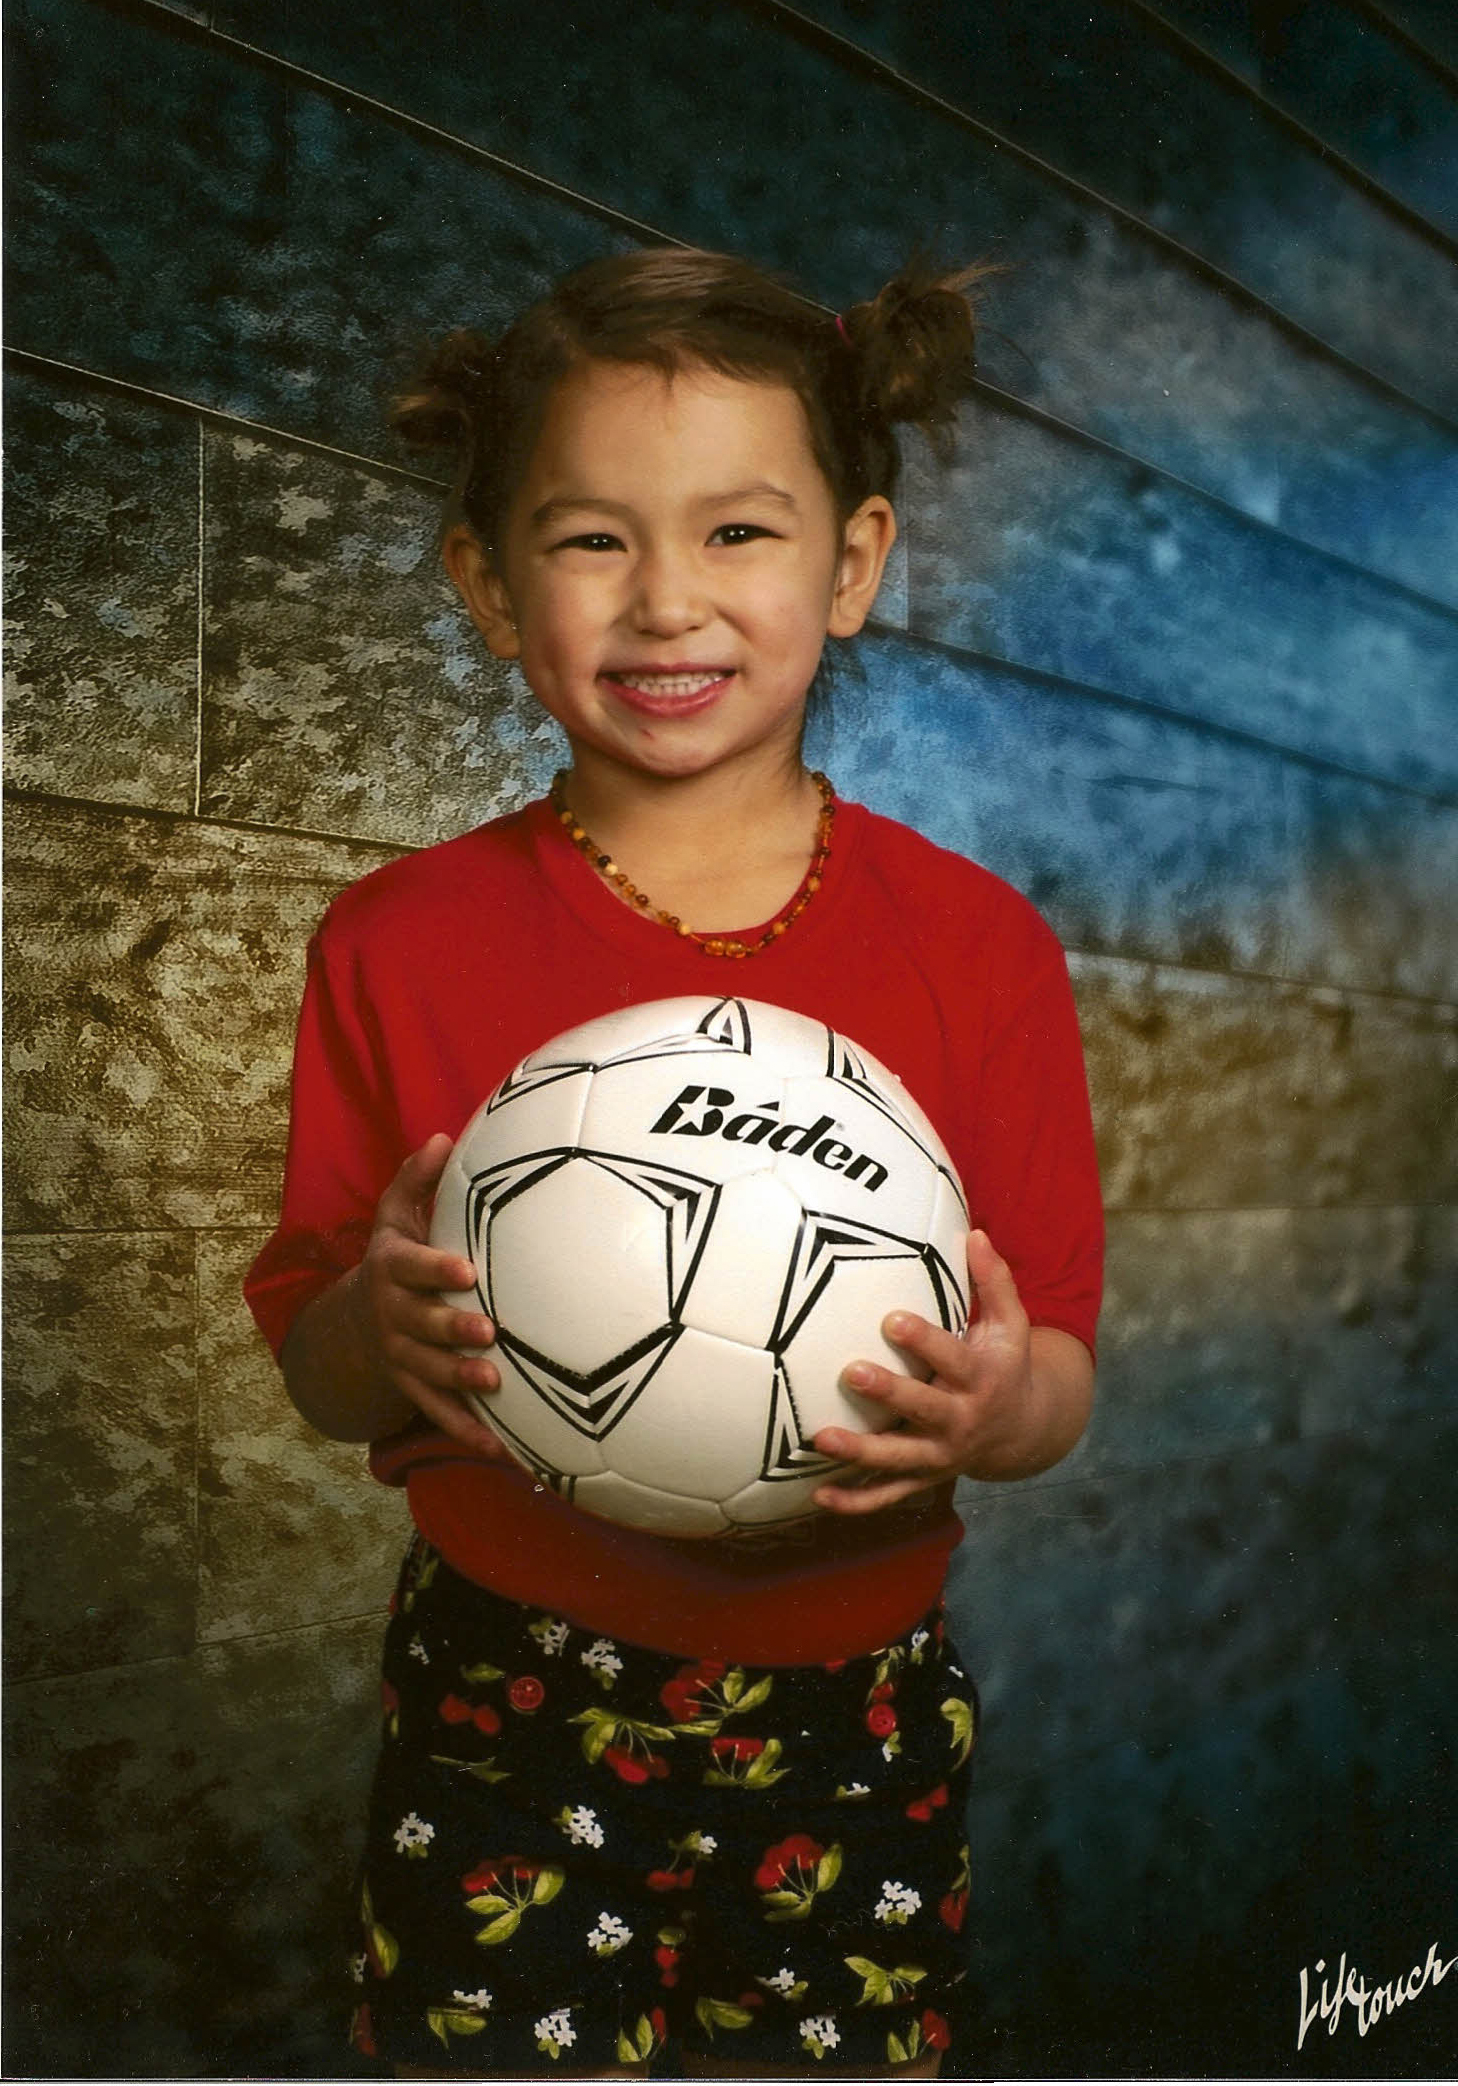 Seriously cute soccer player!